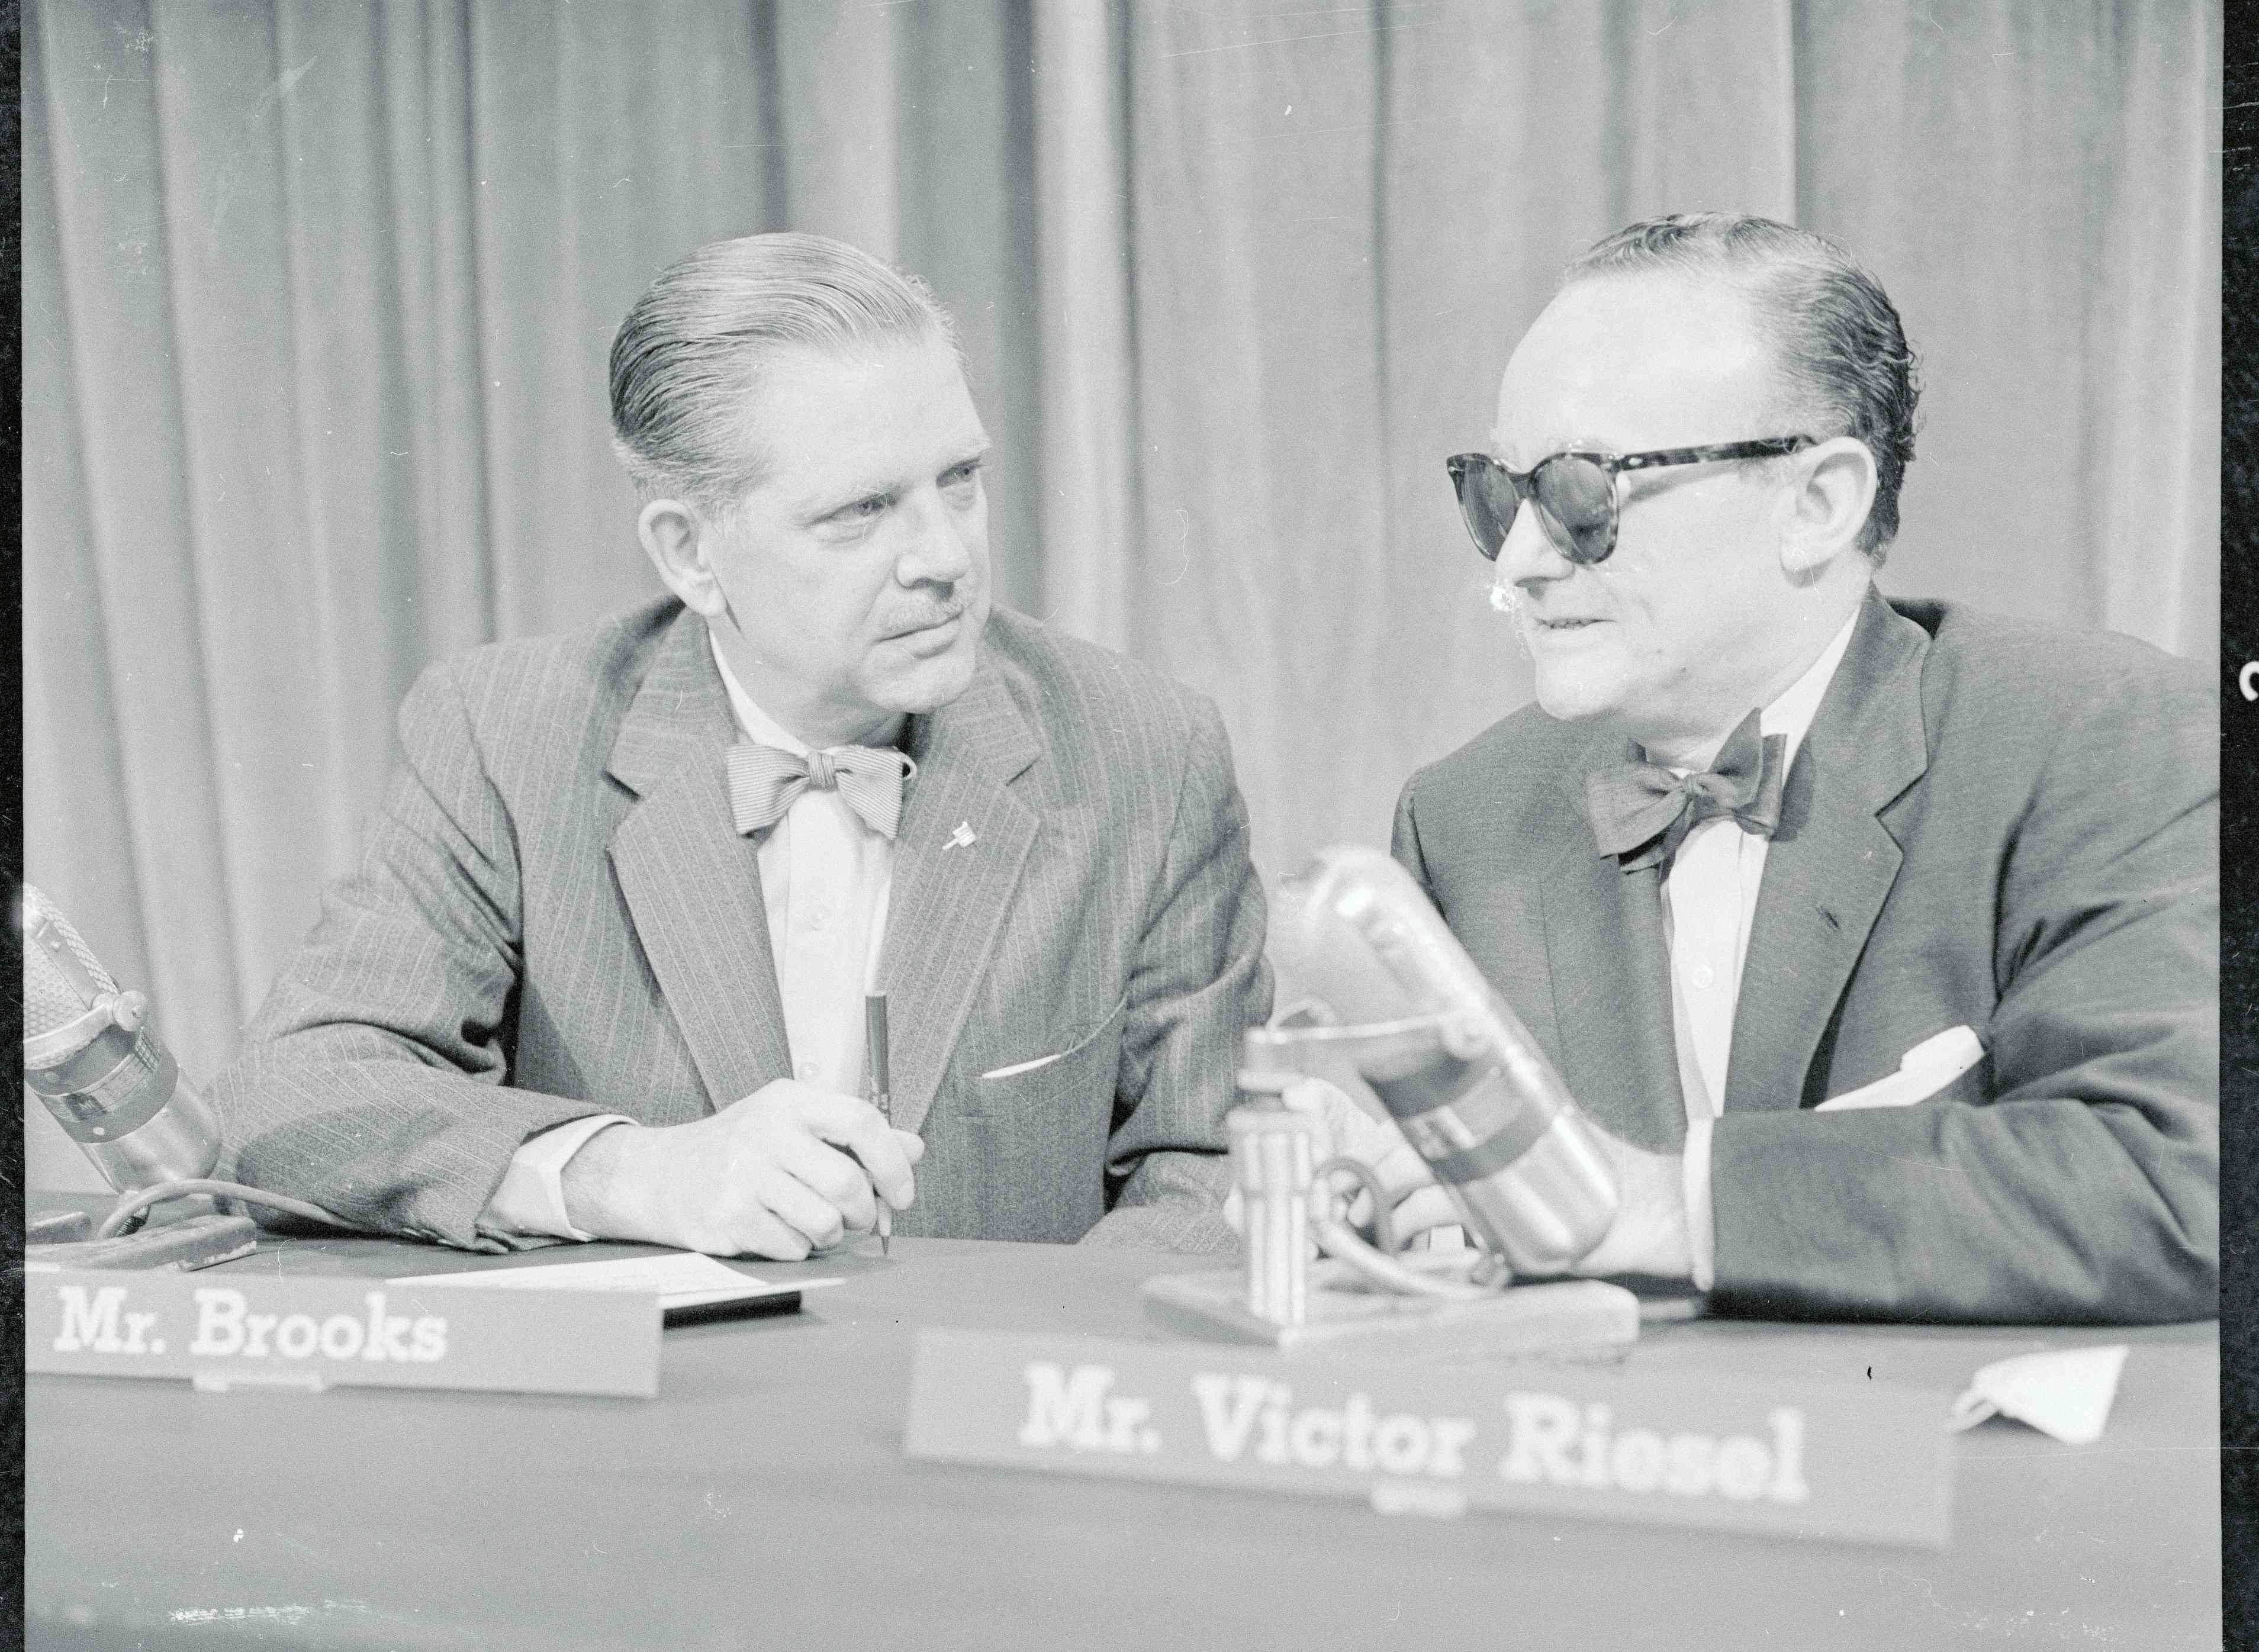 Portrait of Victor Riesel and Ned Brooks